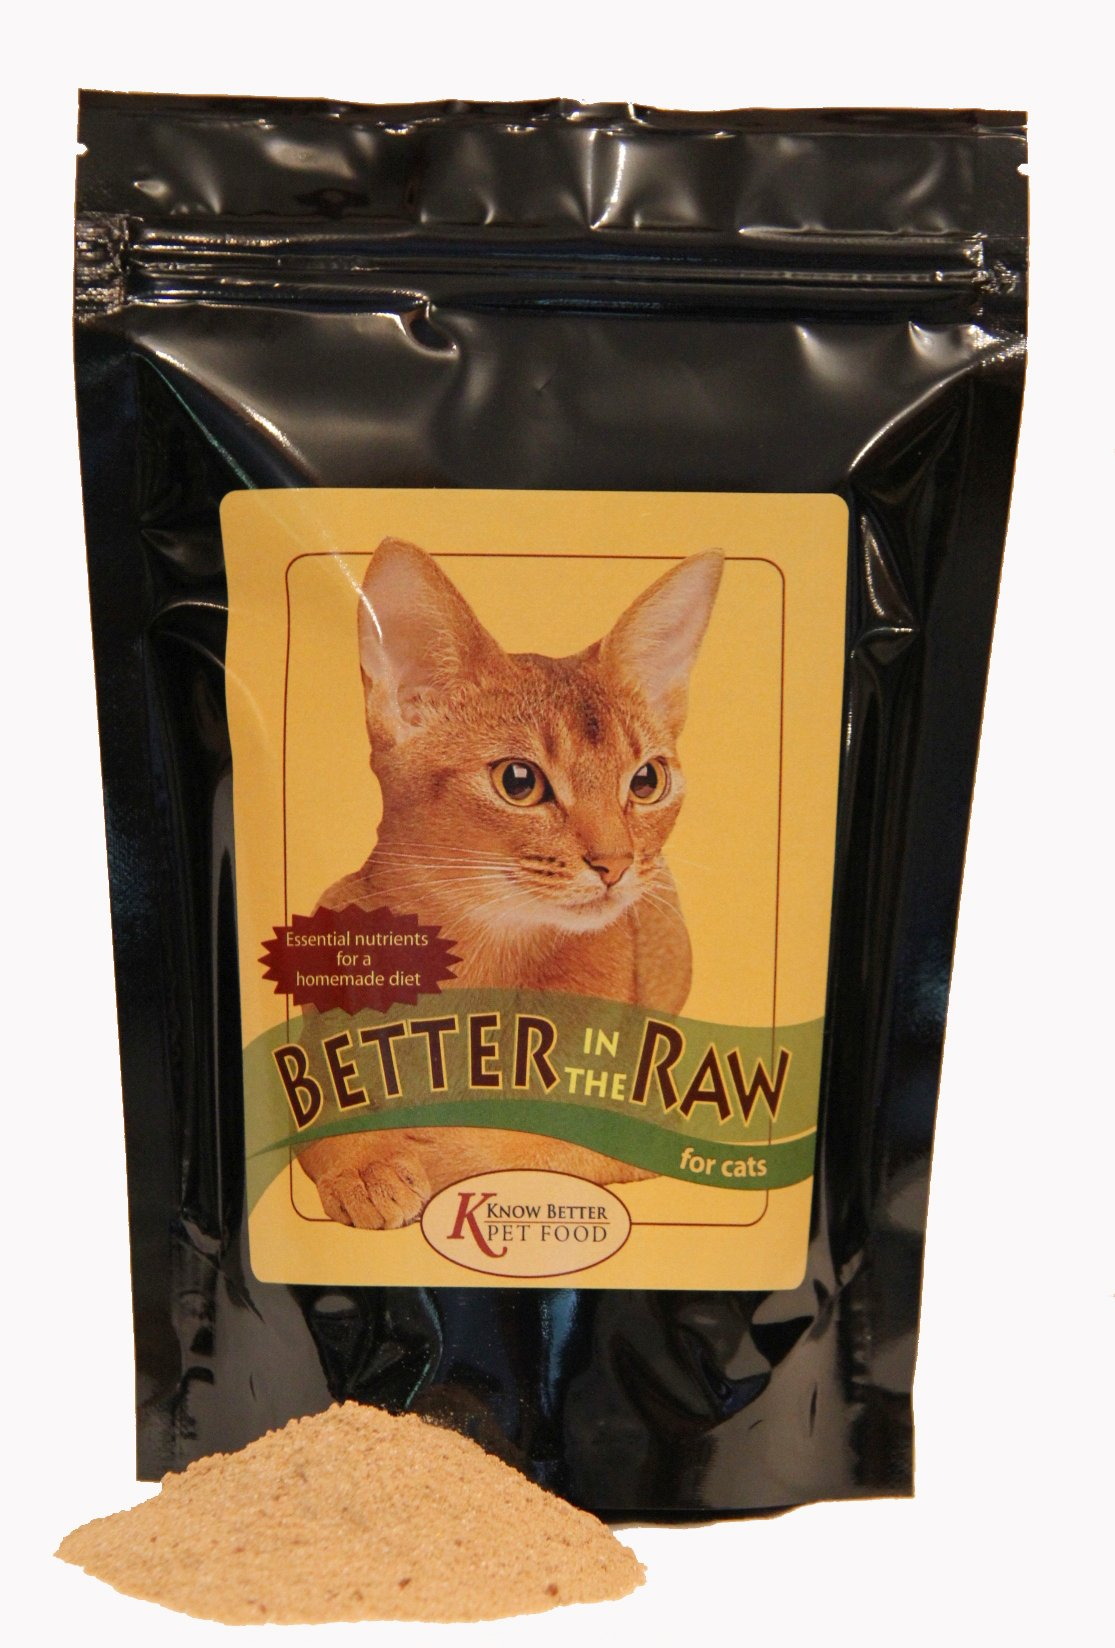 Better in the Raw for Cats - Make your own homemade raw cat food! by Know Better Pet Food